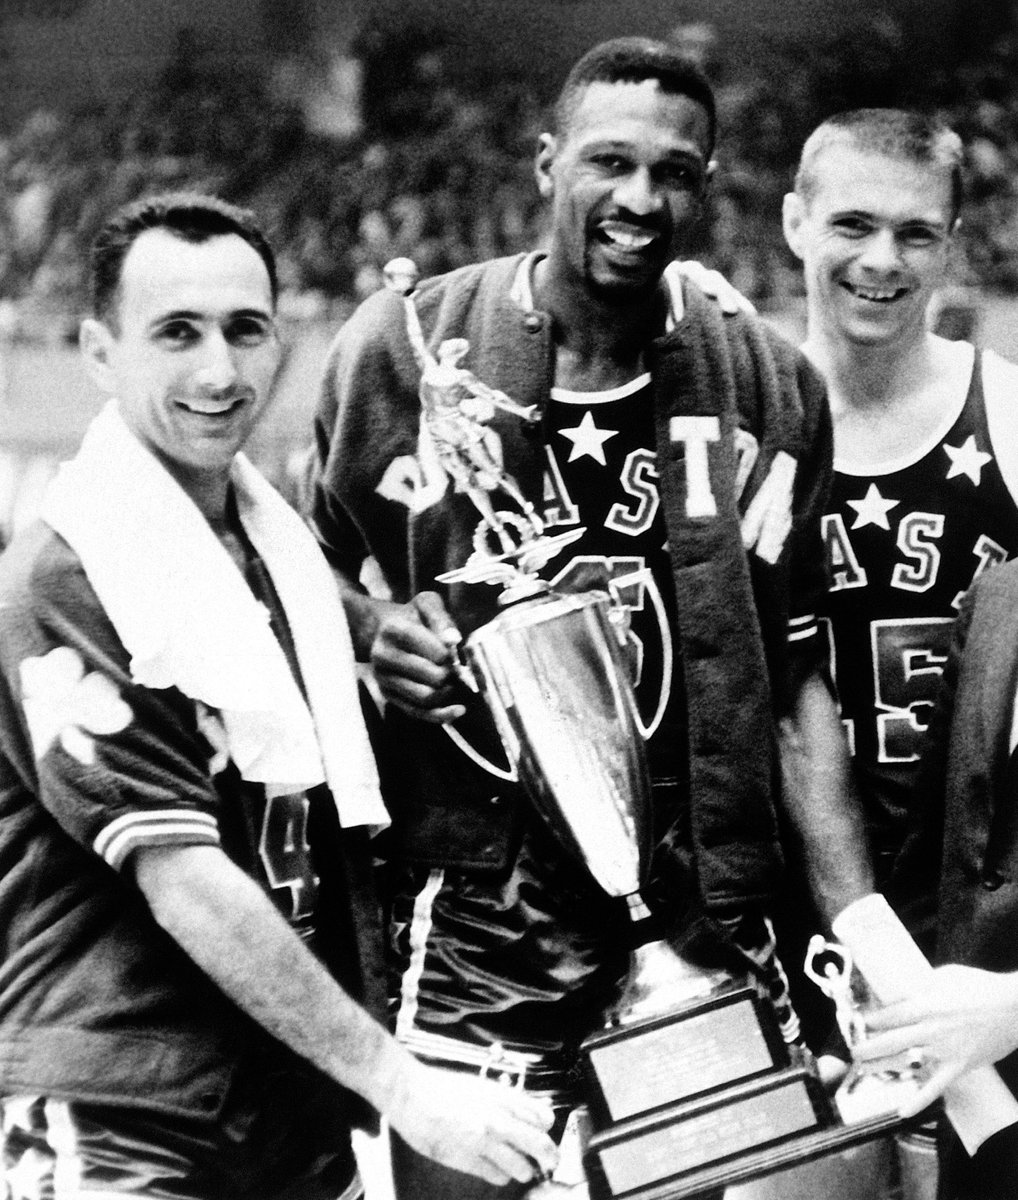 .@ESefko is correct. Bill Russell was named @NBAAllStar Game MVP in 1963, the first year LA hosted the game. Russell, flanked by @celtics teammates Bob Cousy [left] and Tom Heinsohn, dropped 19 points and grabbed 24 rebounds in the East's 115-108 win at LA Memorial Sports Arena. https://t.co/S3l2YCTggb